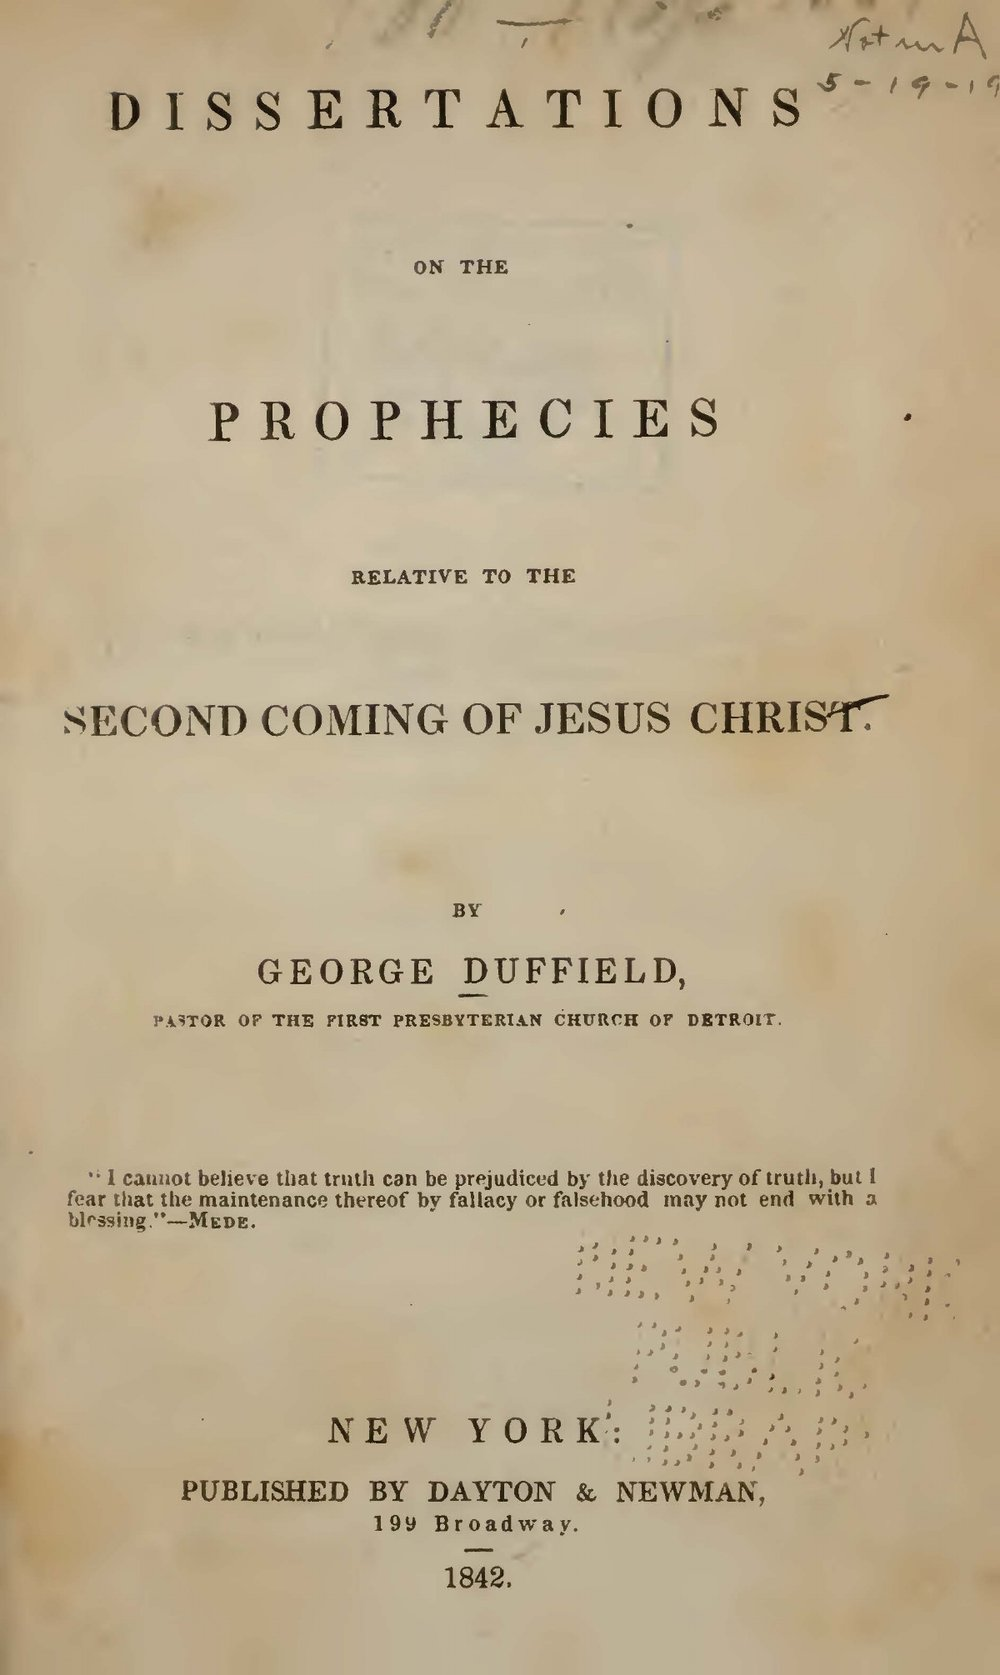 Duffield, IV, George, Dissertations on the Prophecies Relative to the Second Coming of Jesus Christ Title Page.jpg